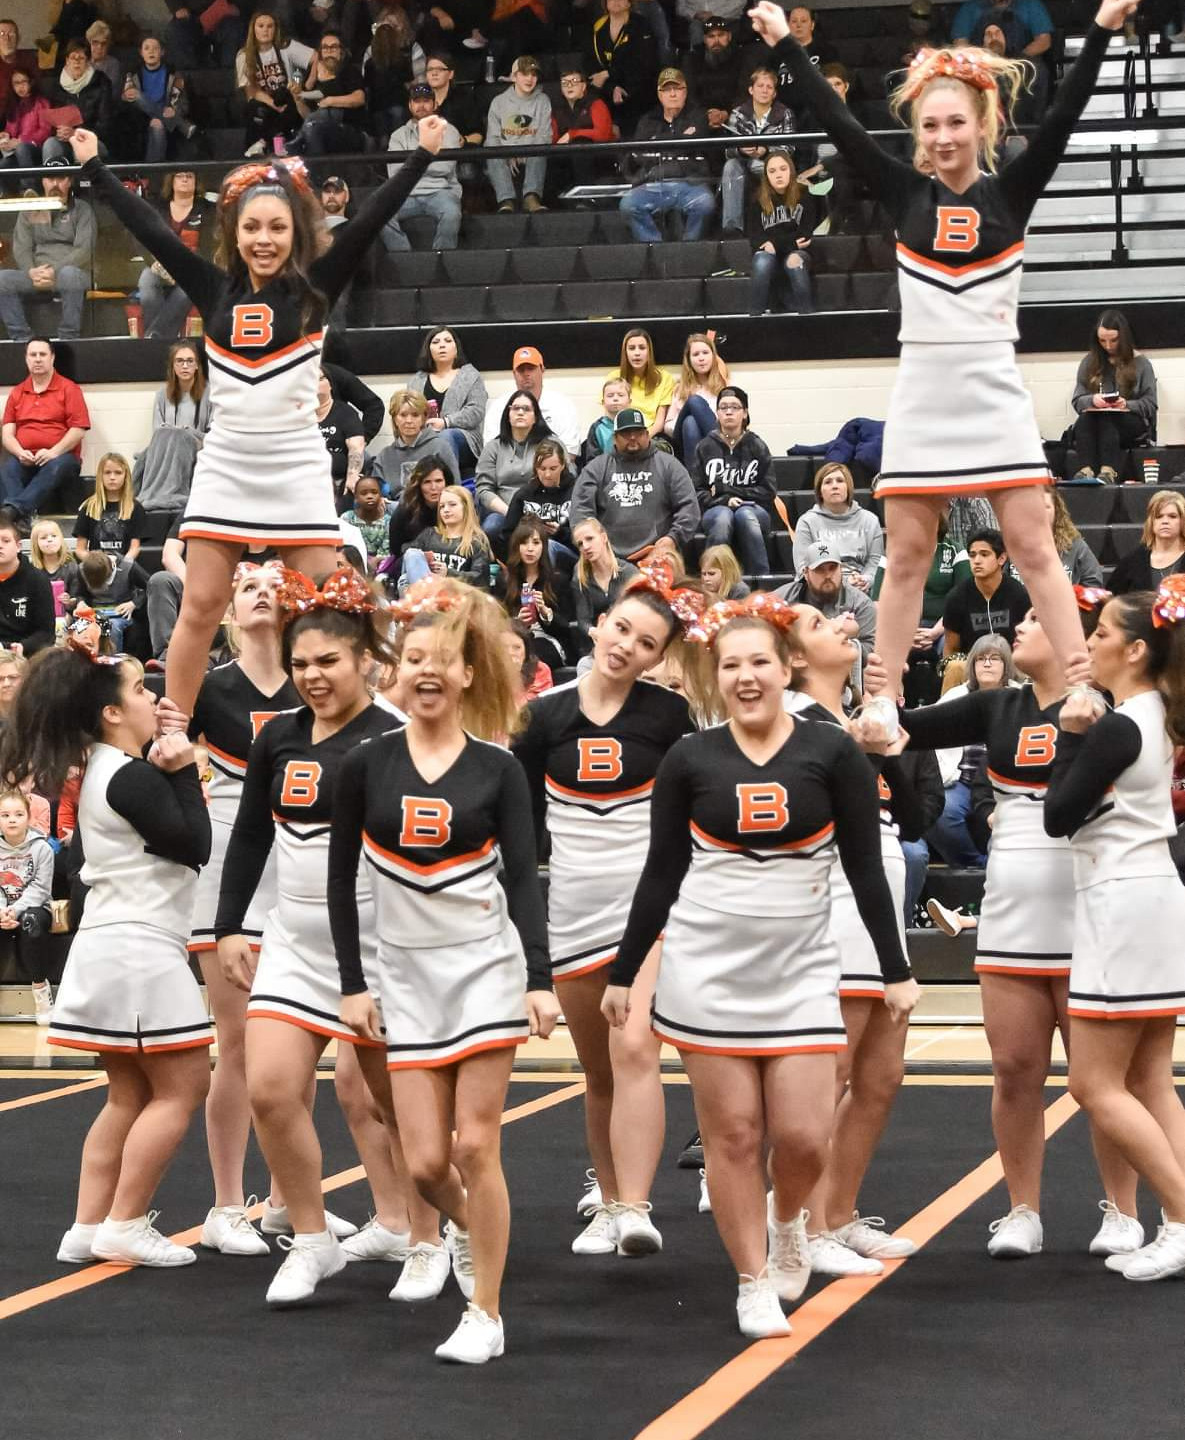 BHS Cheerleaders during their stunt sequence.